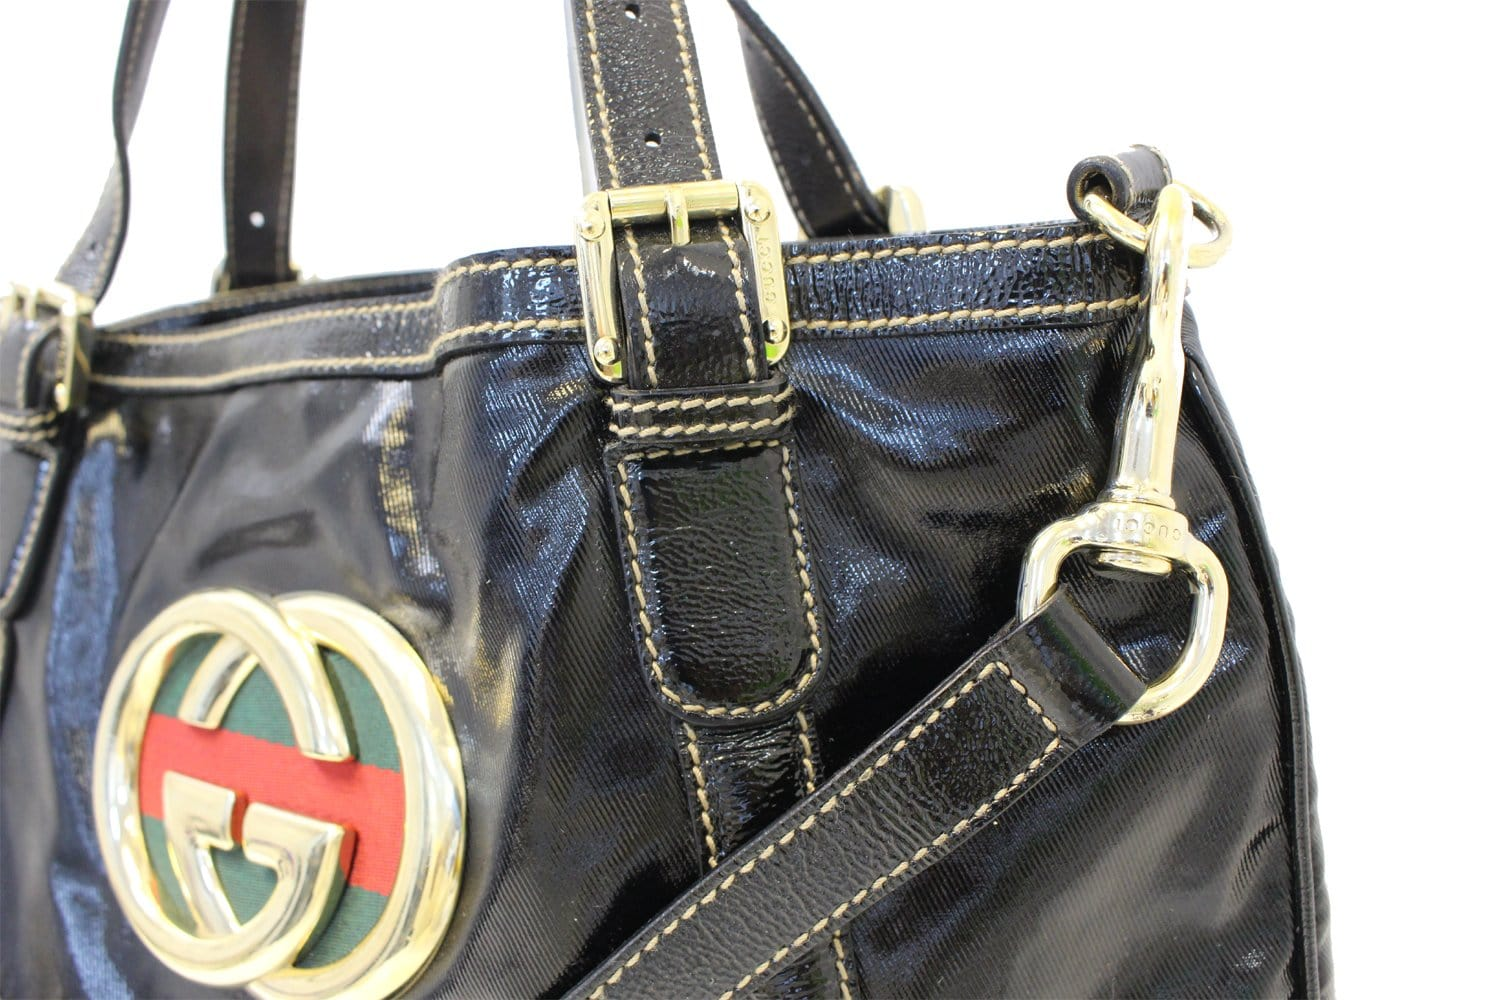 7926da1b1f9e Authentic GUCCI 162886 Black Leather Britt Hobo Bag TT1695